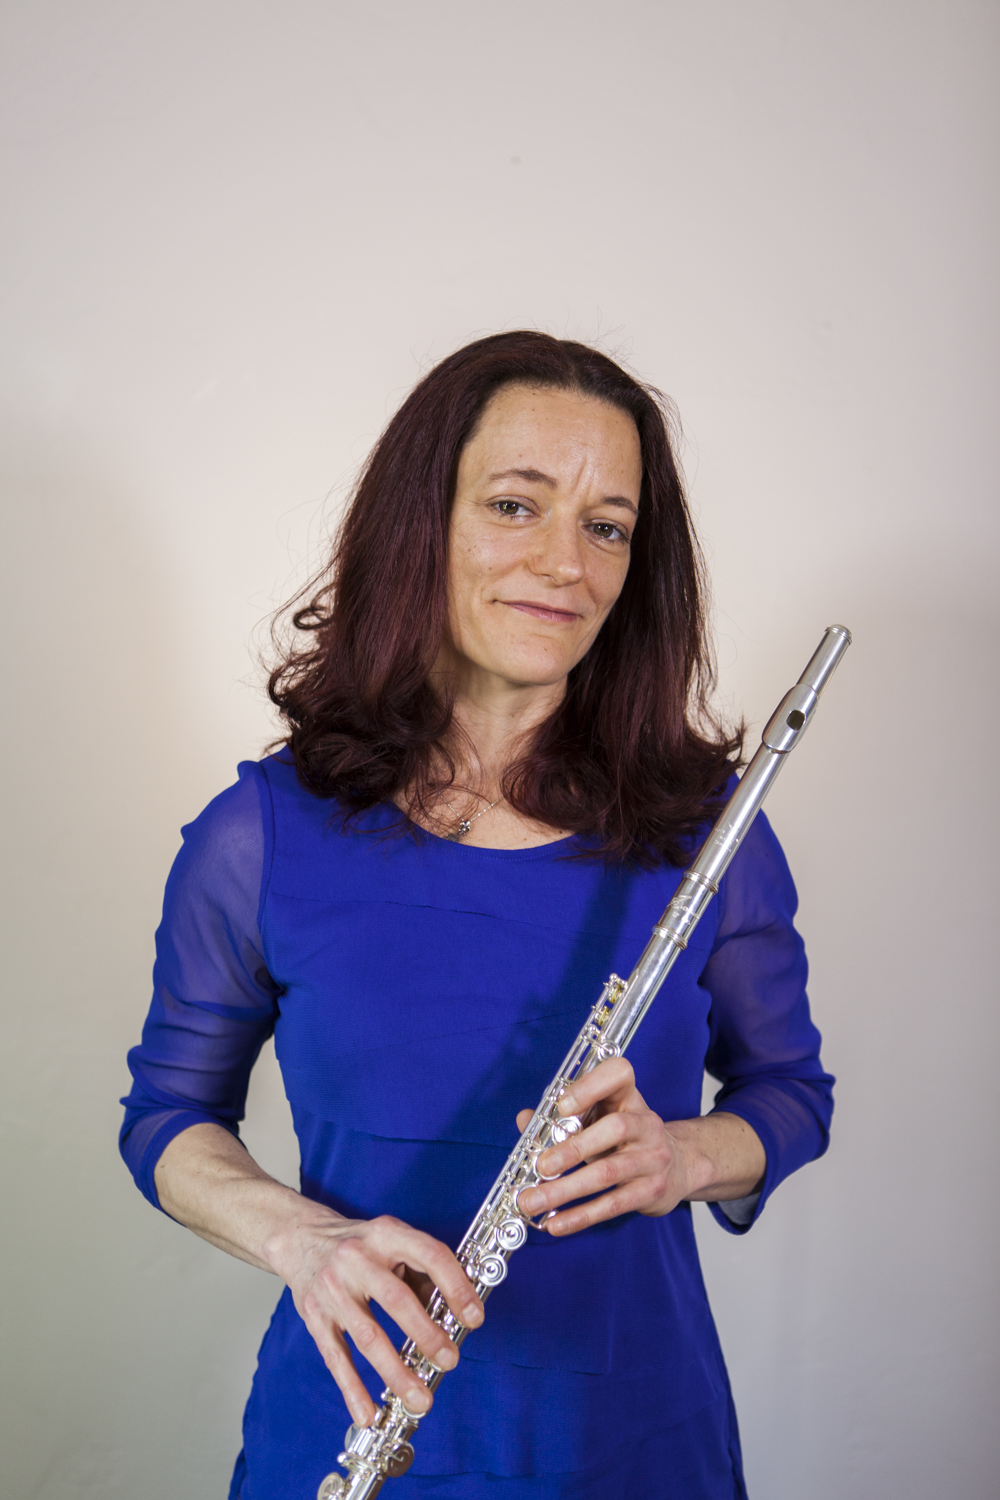 Piano & Flute Teacher Allison Frazier